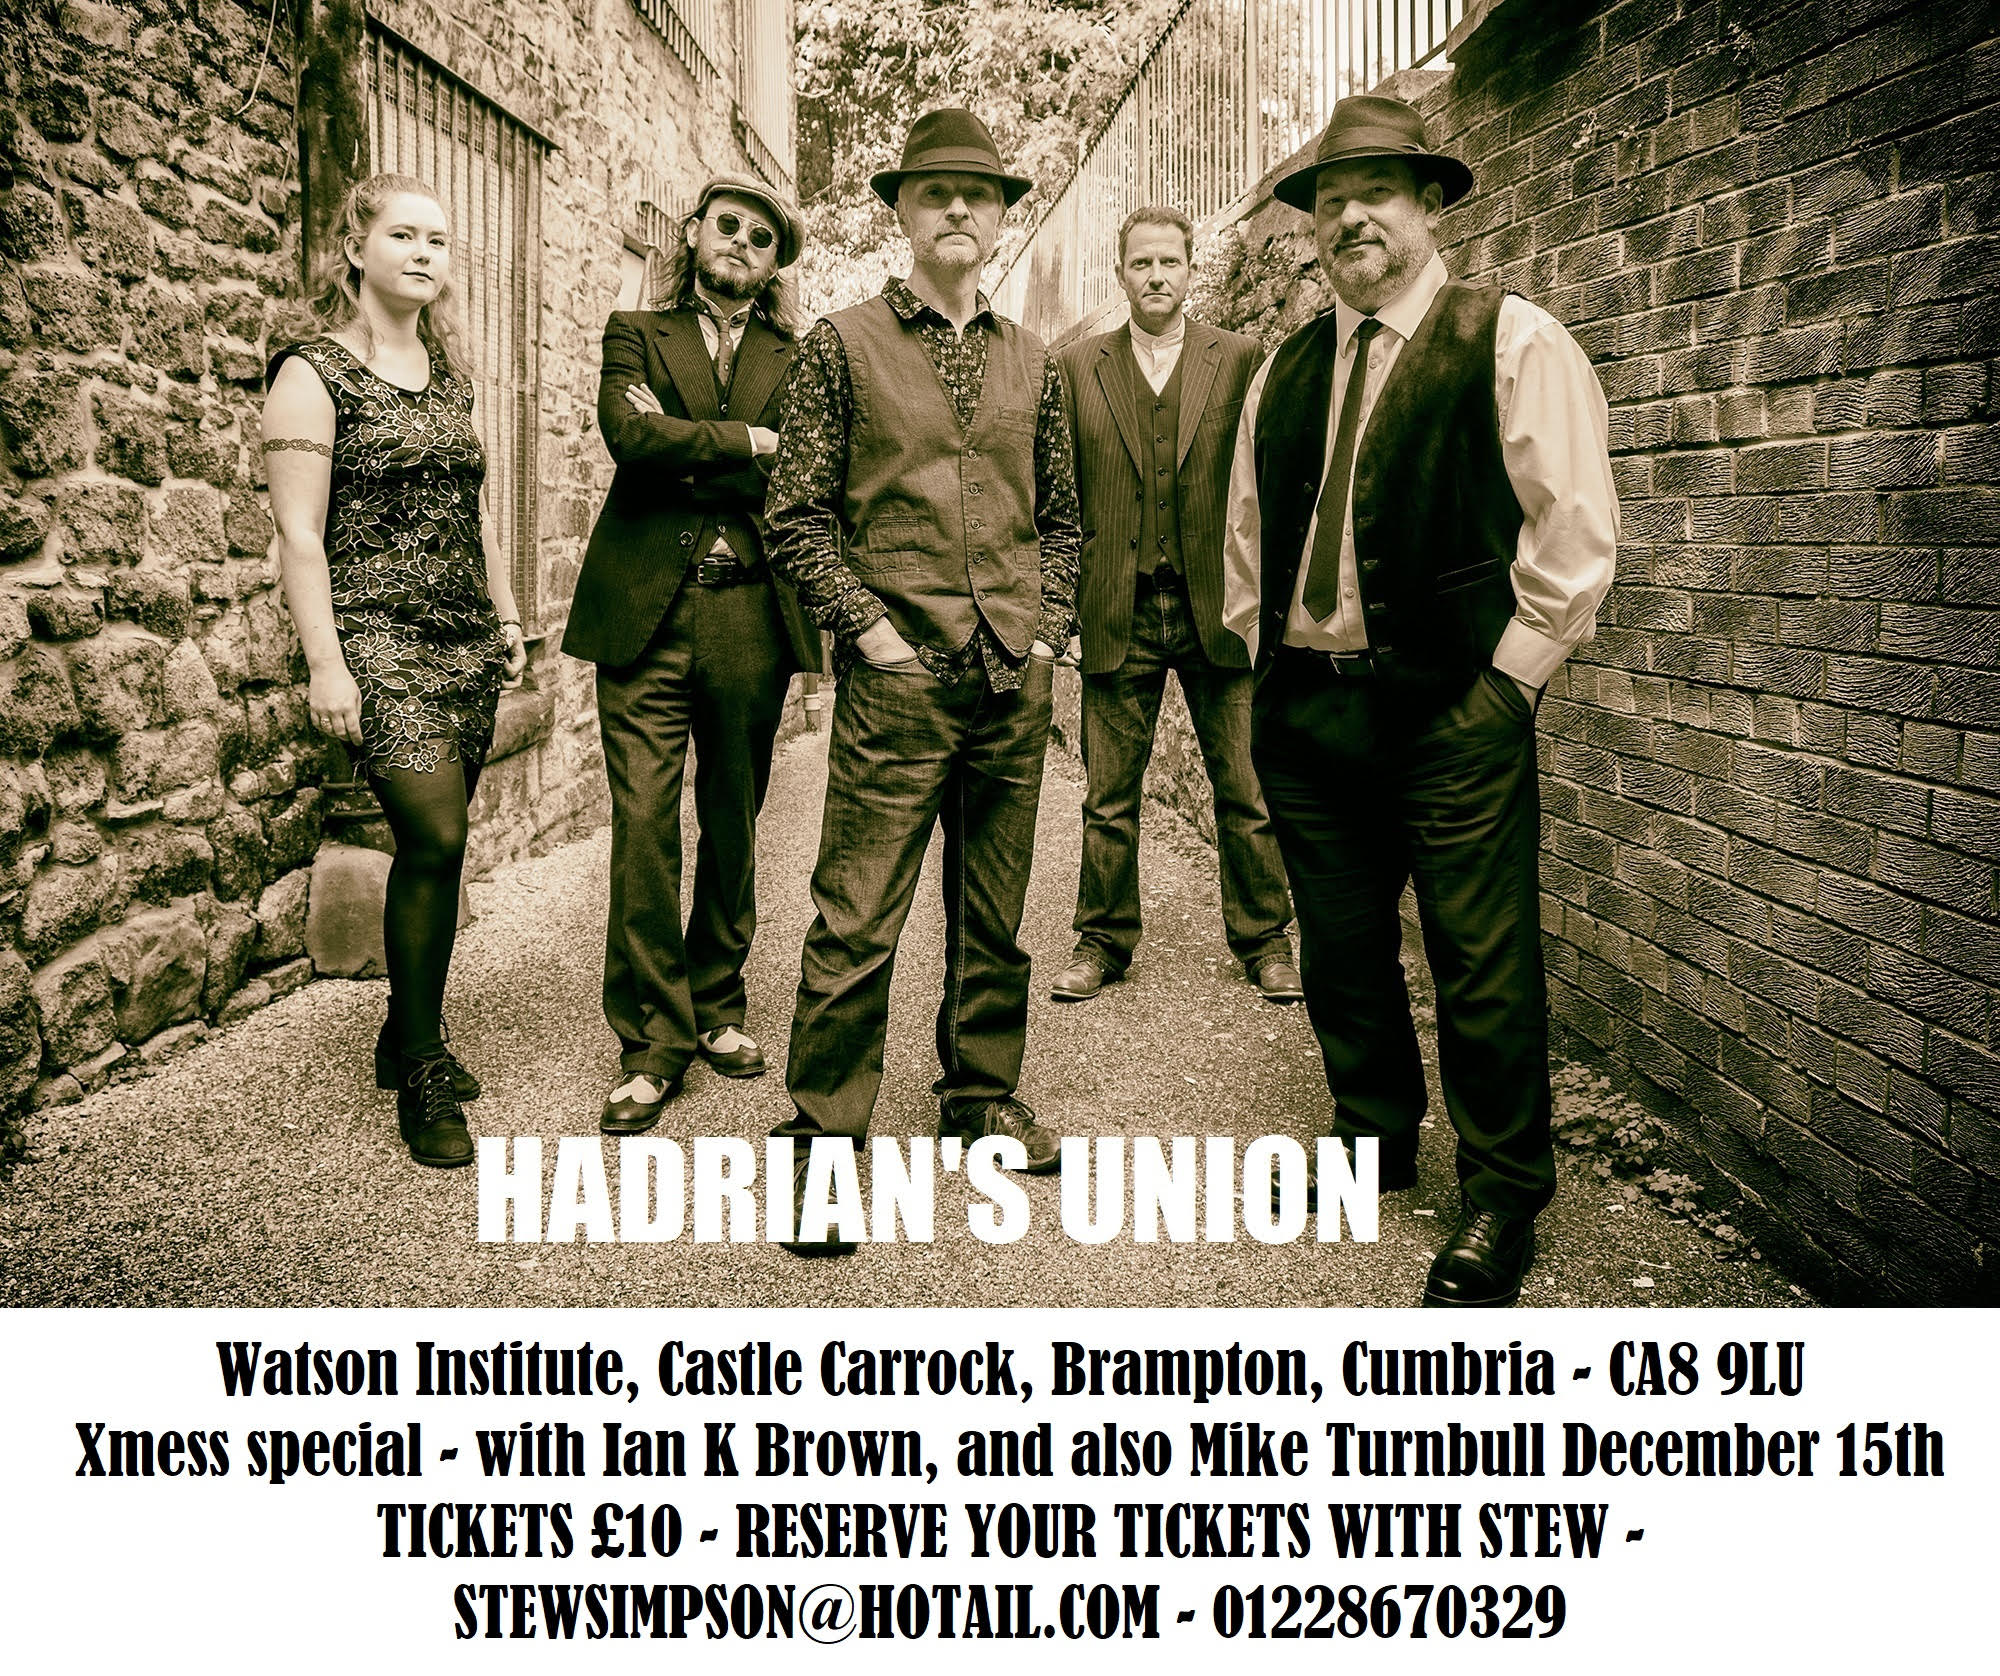 Hadrian's Union Xmess Special gig at The Watson Institute on Sunday December 15th